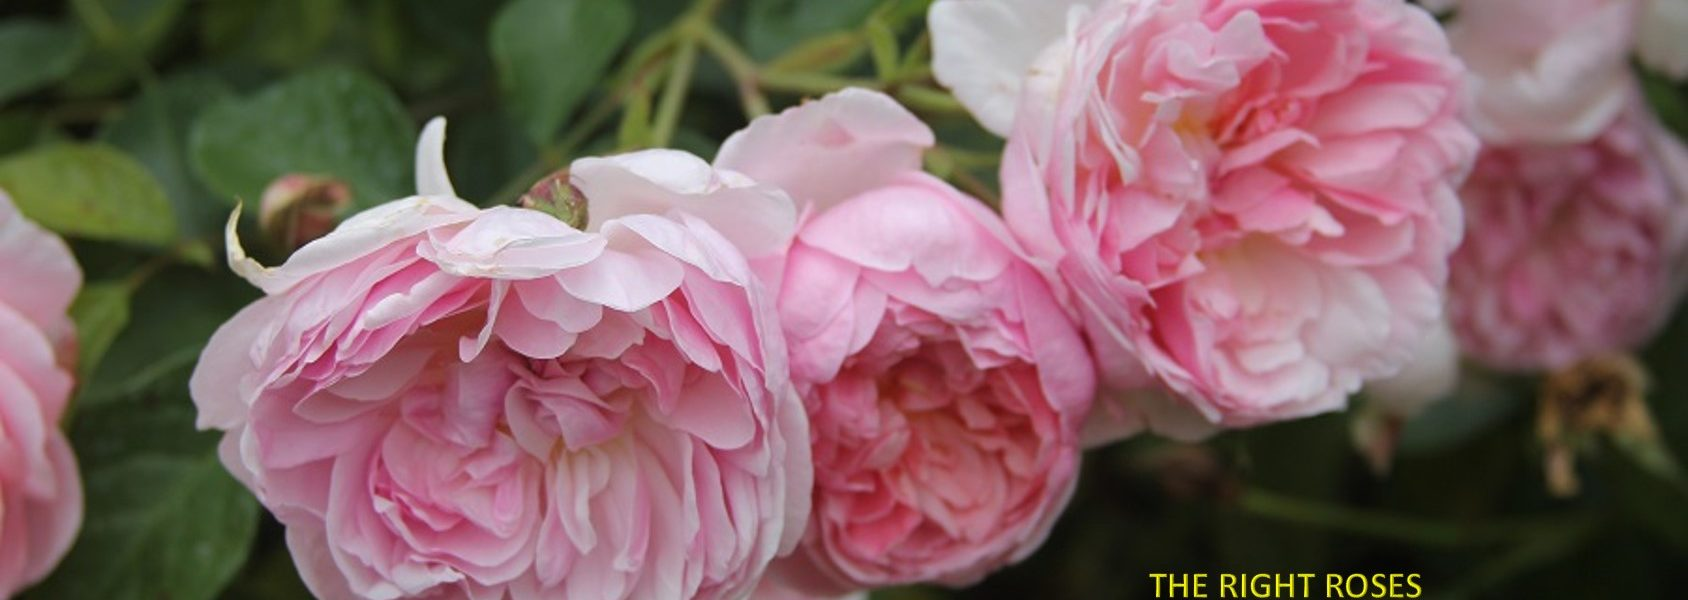 Anne Boleyn rose review the right roses score best top garden store david austin english roses rose products rose rating the right leap rose food fertilizer